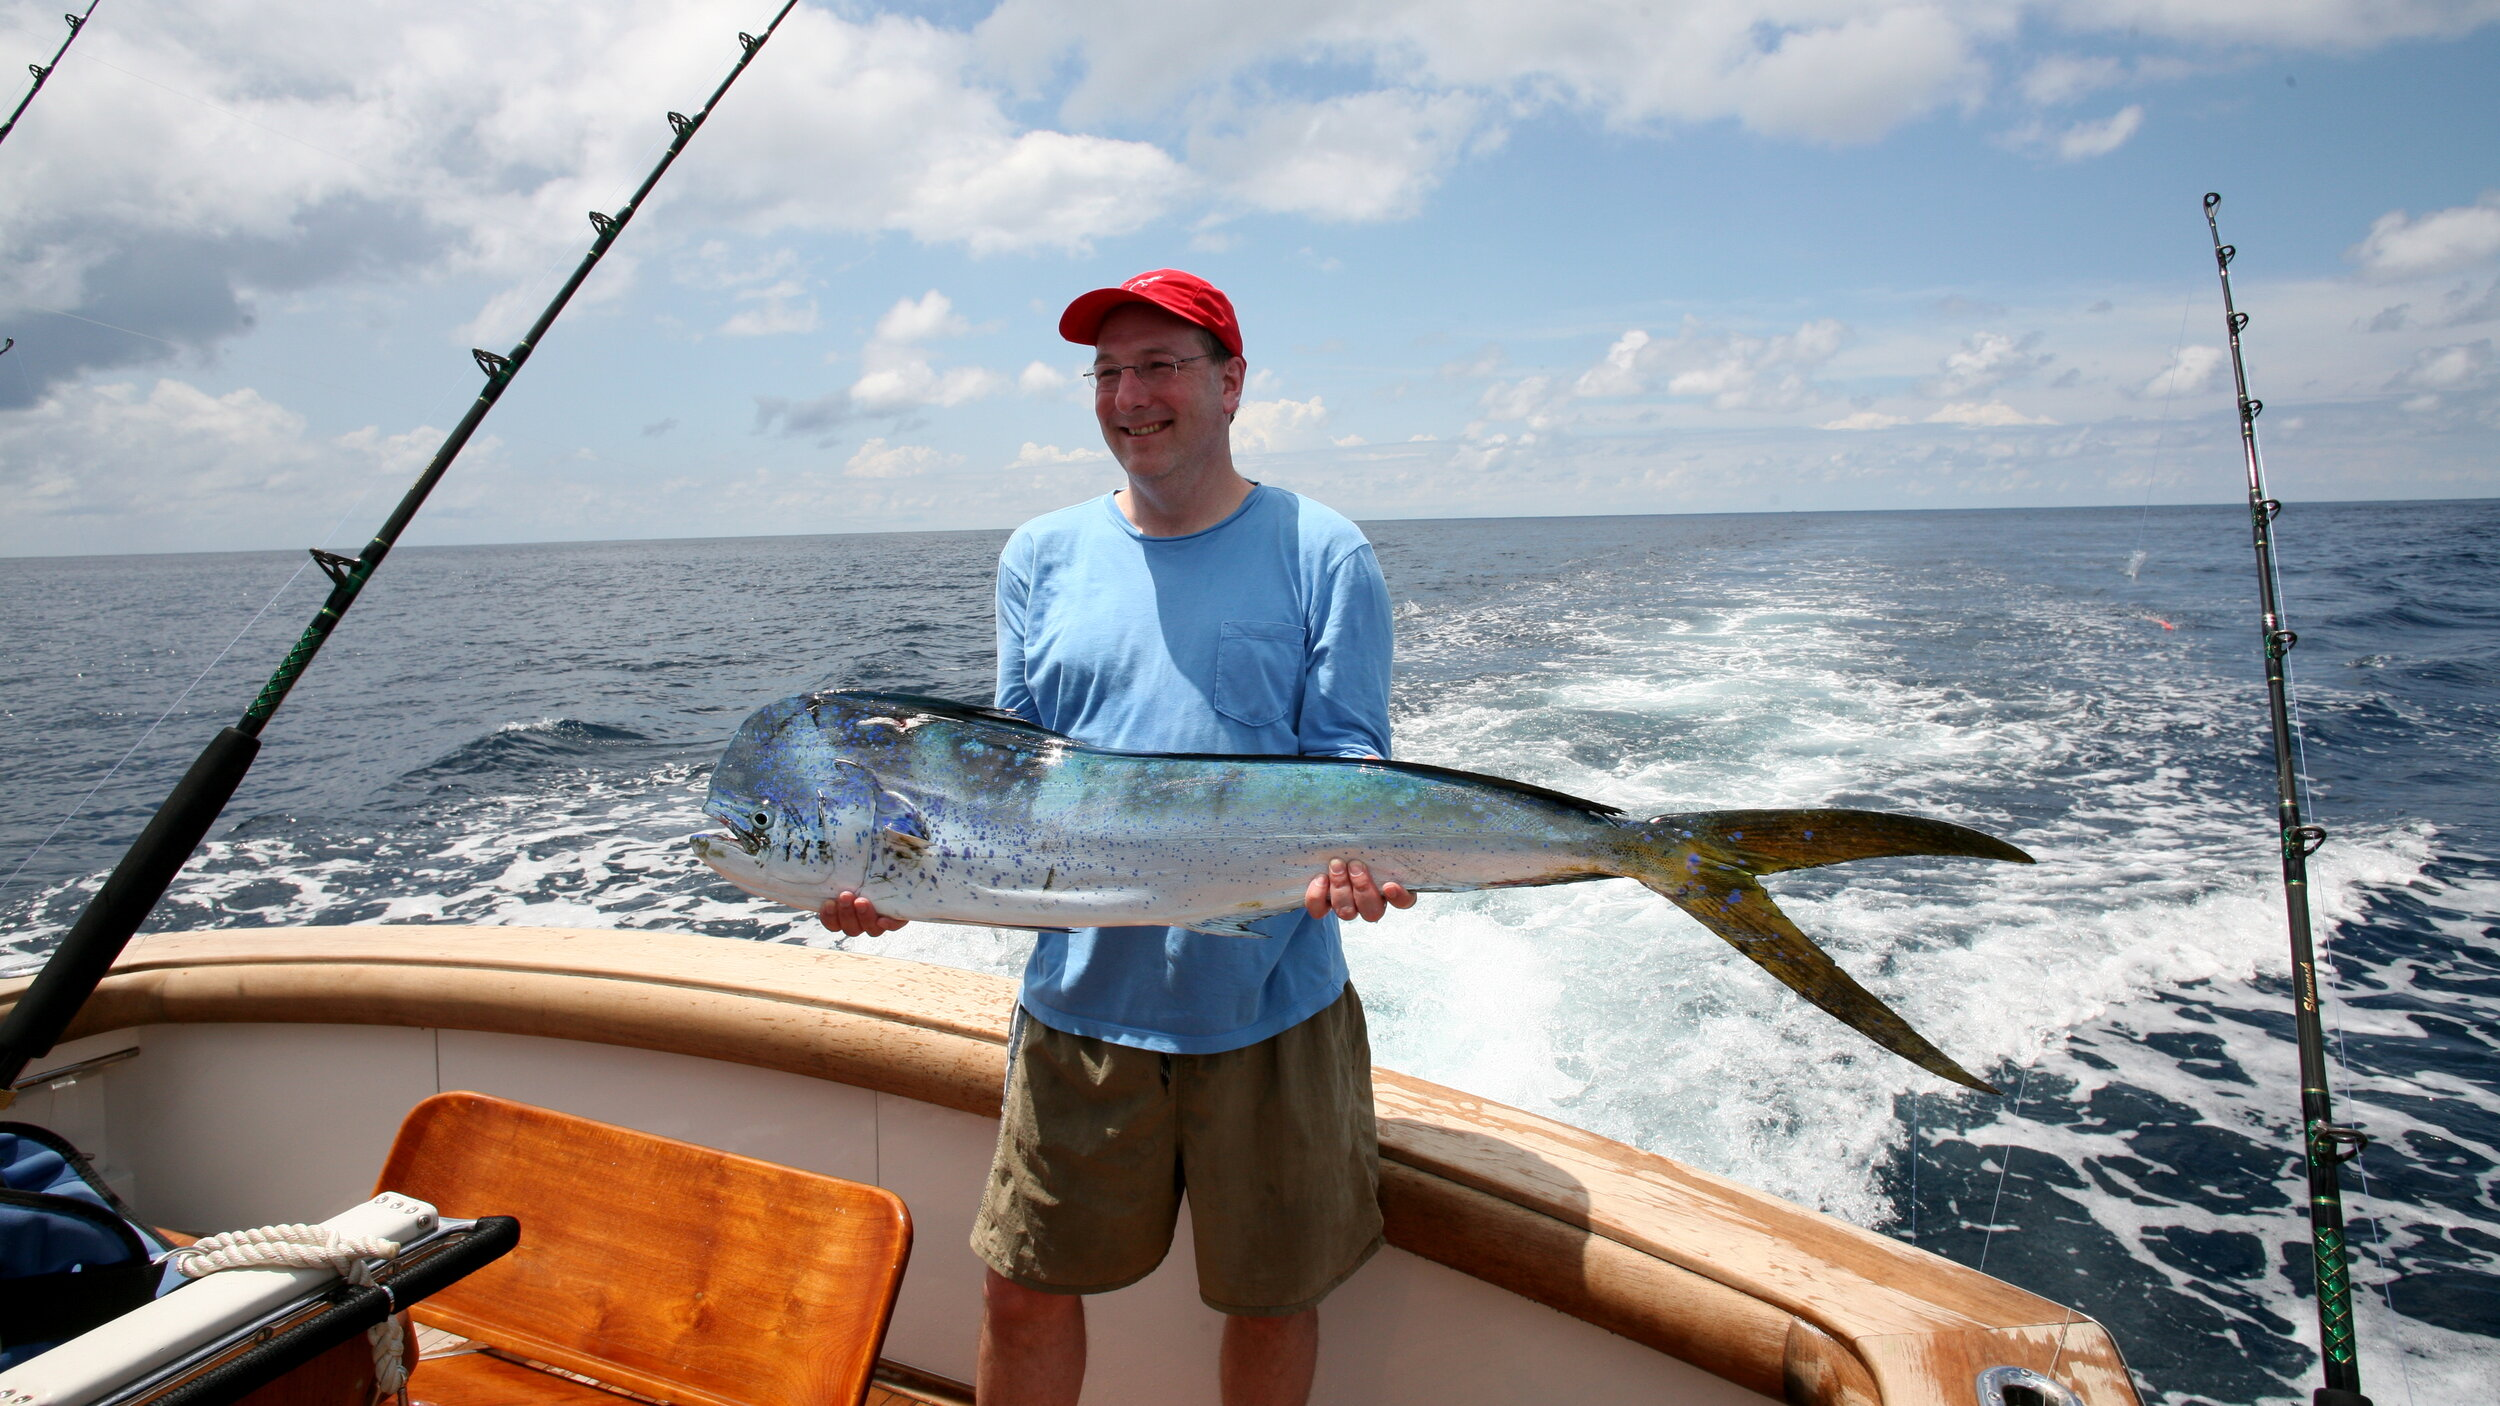 Fish - Go sport fishing in one of the most diverse bodies of water on the planet…